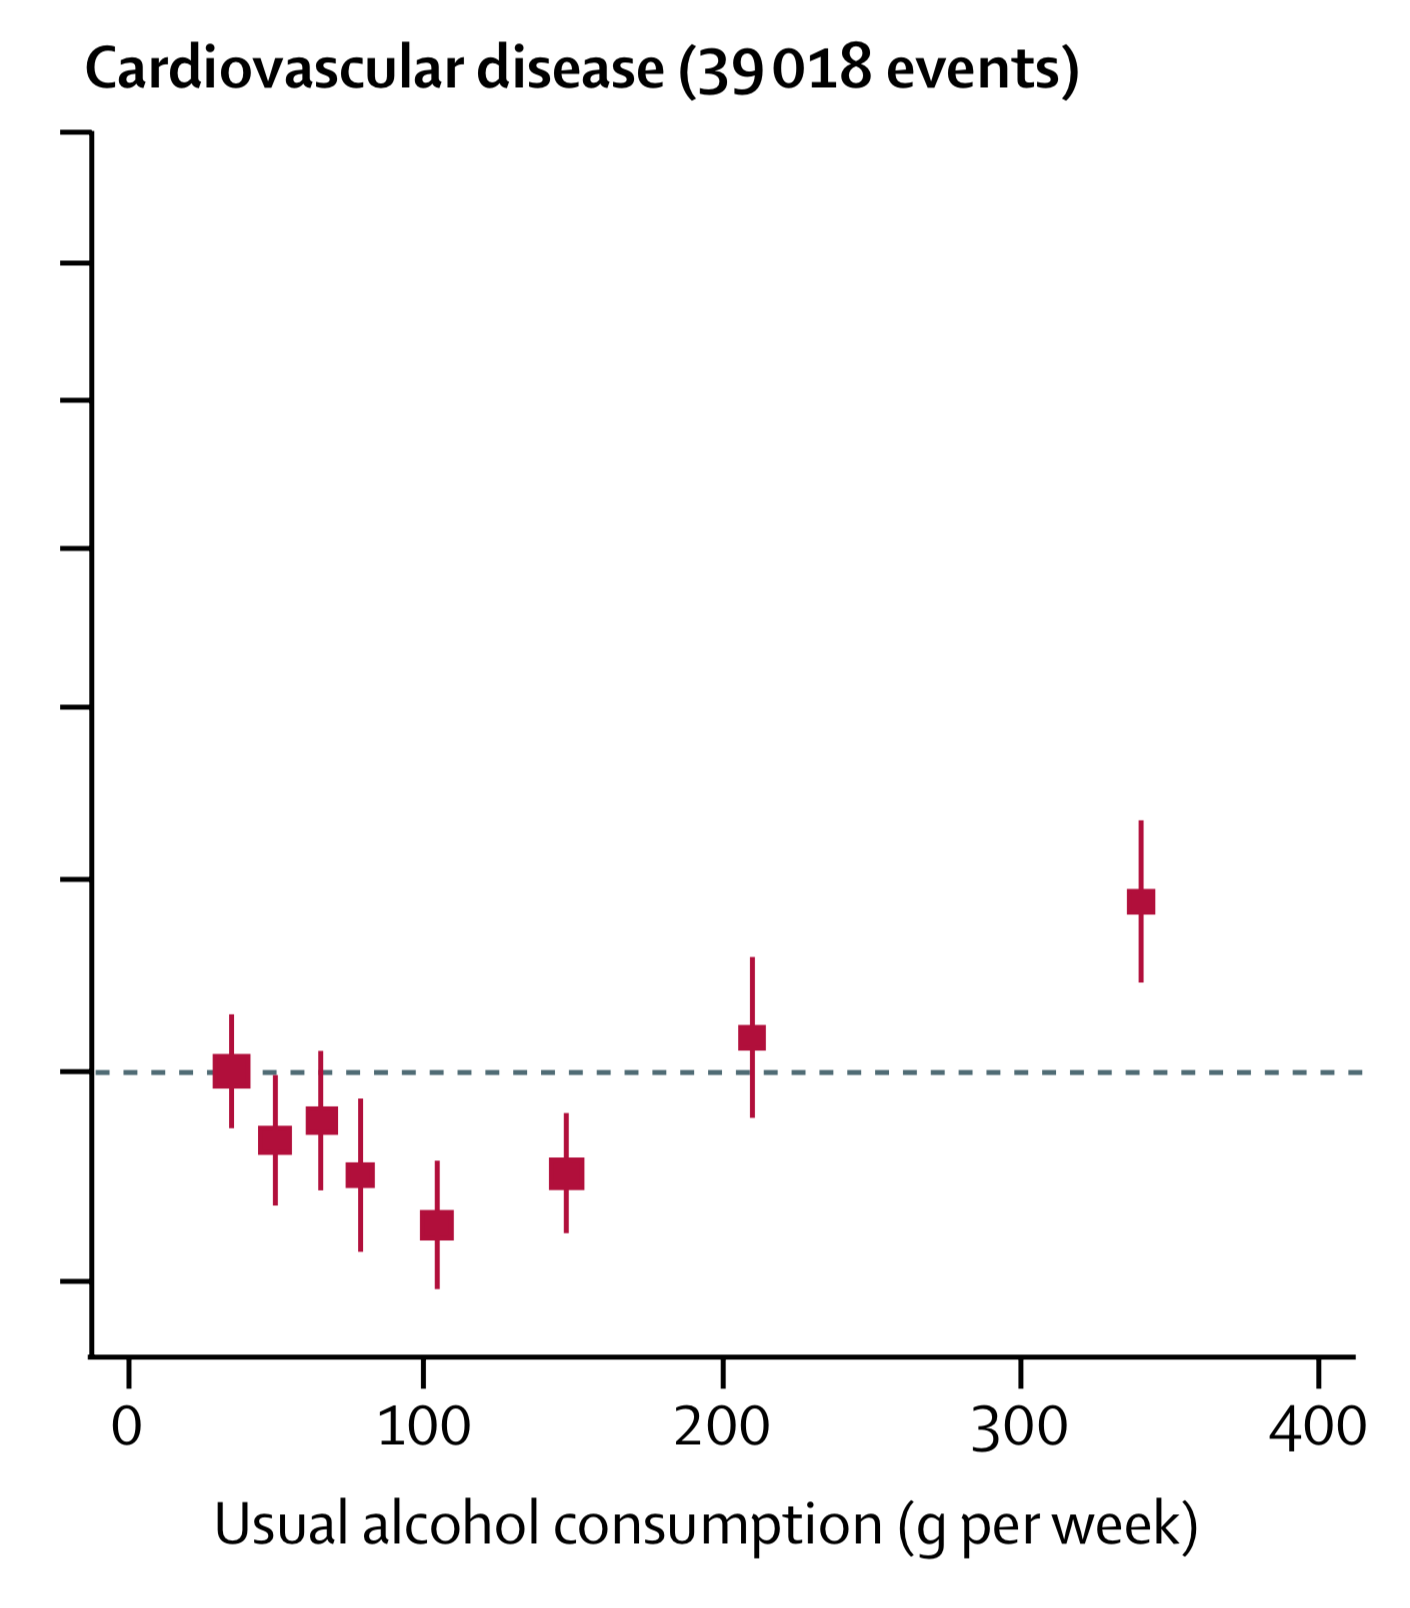 So, when combined, overall cardiovascular disease risks follow a U-shaped relationship; in other words, risk appears lowest around 100g per week.